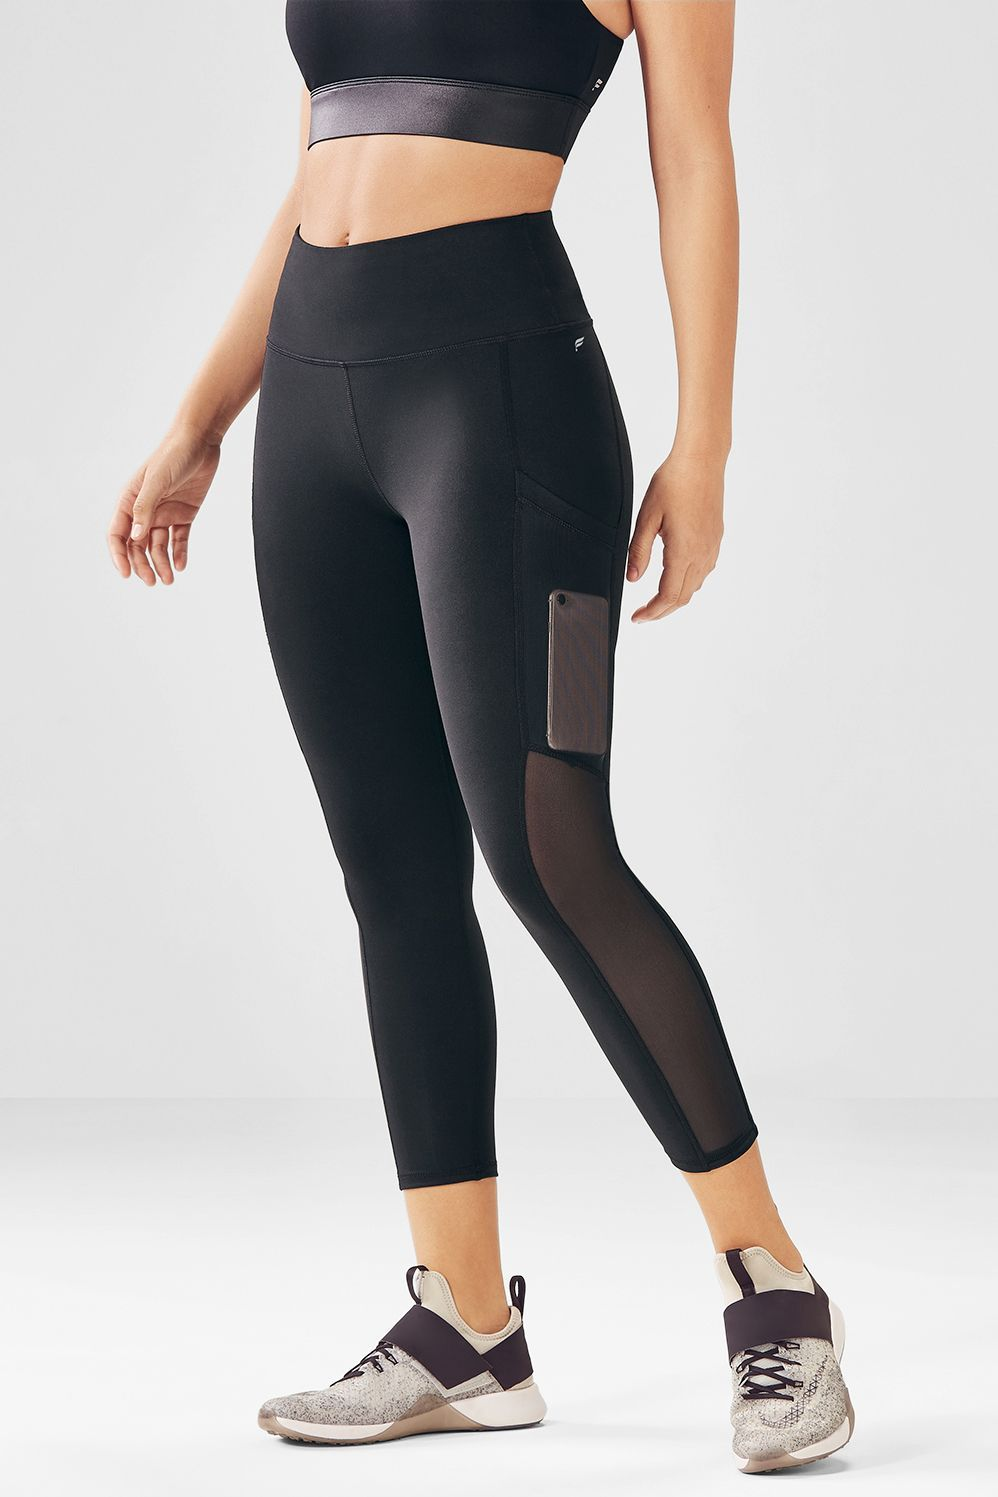 04ce7499a3065 Stay connected at the gym with our power mesh pocket, high-rise capris,  built to keep you sweat-free and chafe-free, but never tune-free.